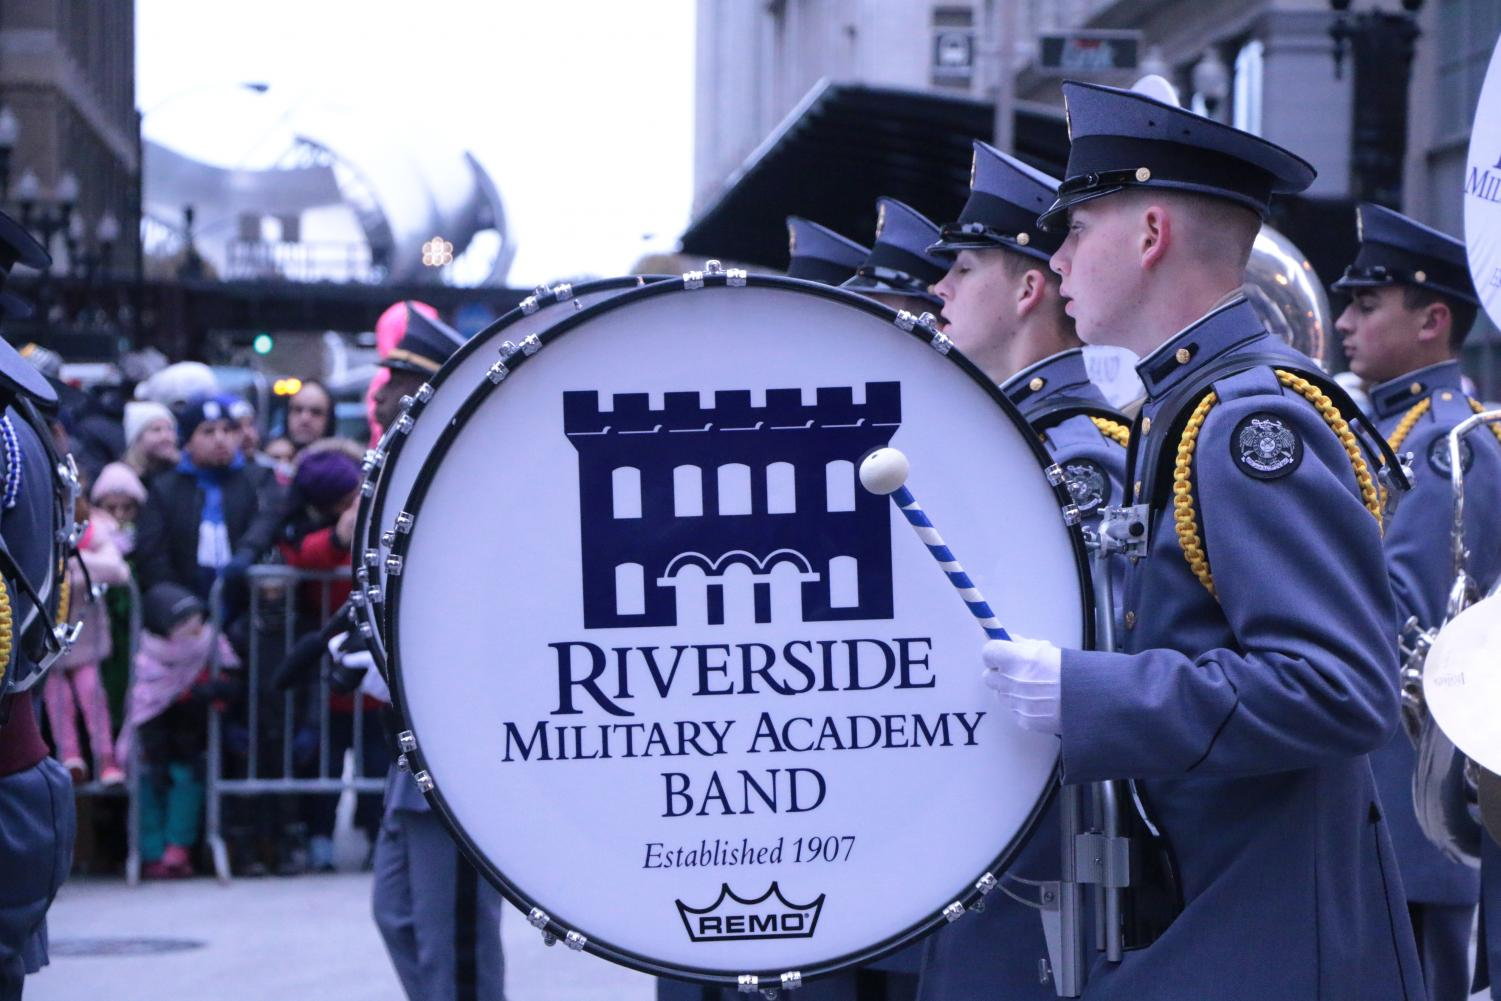 Riverside+Military+Academy+Band+drummer+drumming.